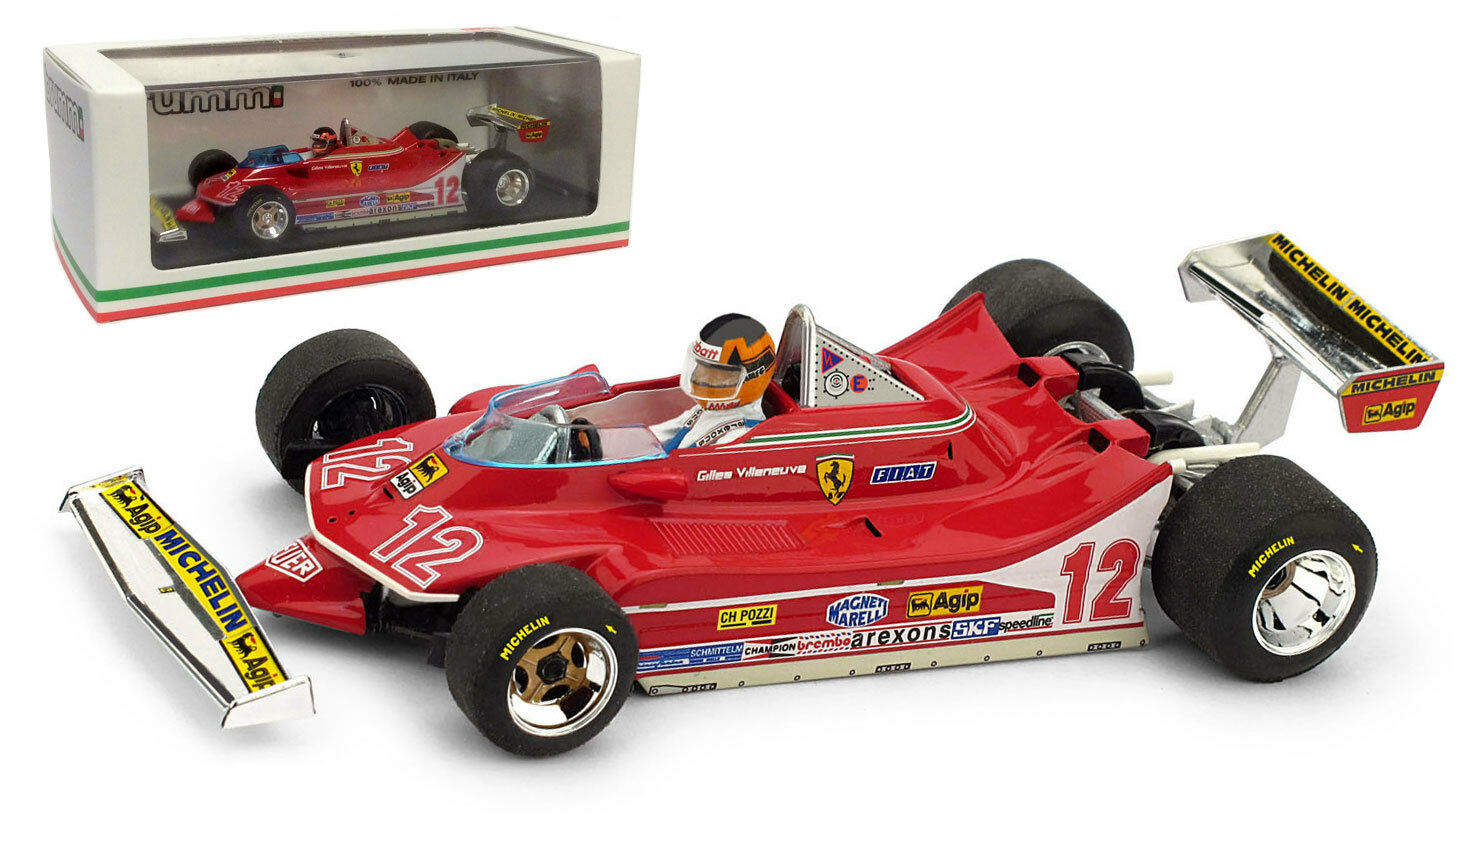 Brumm Ferrari 312 T4 nd French GP 1979 - Gilles Villeneuve 1 43 Scale